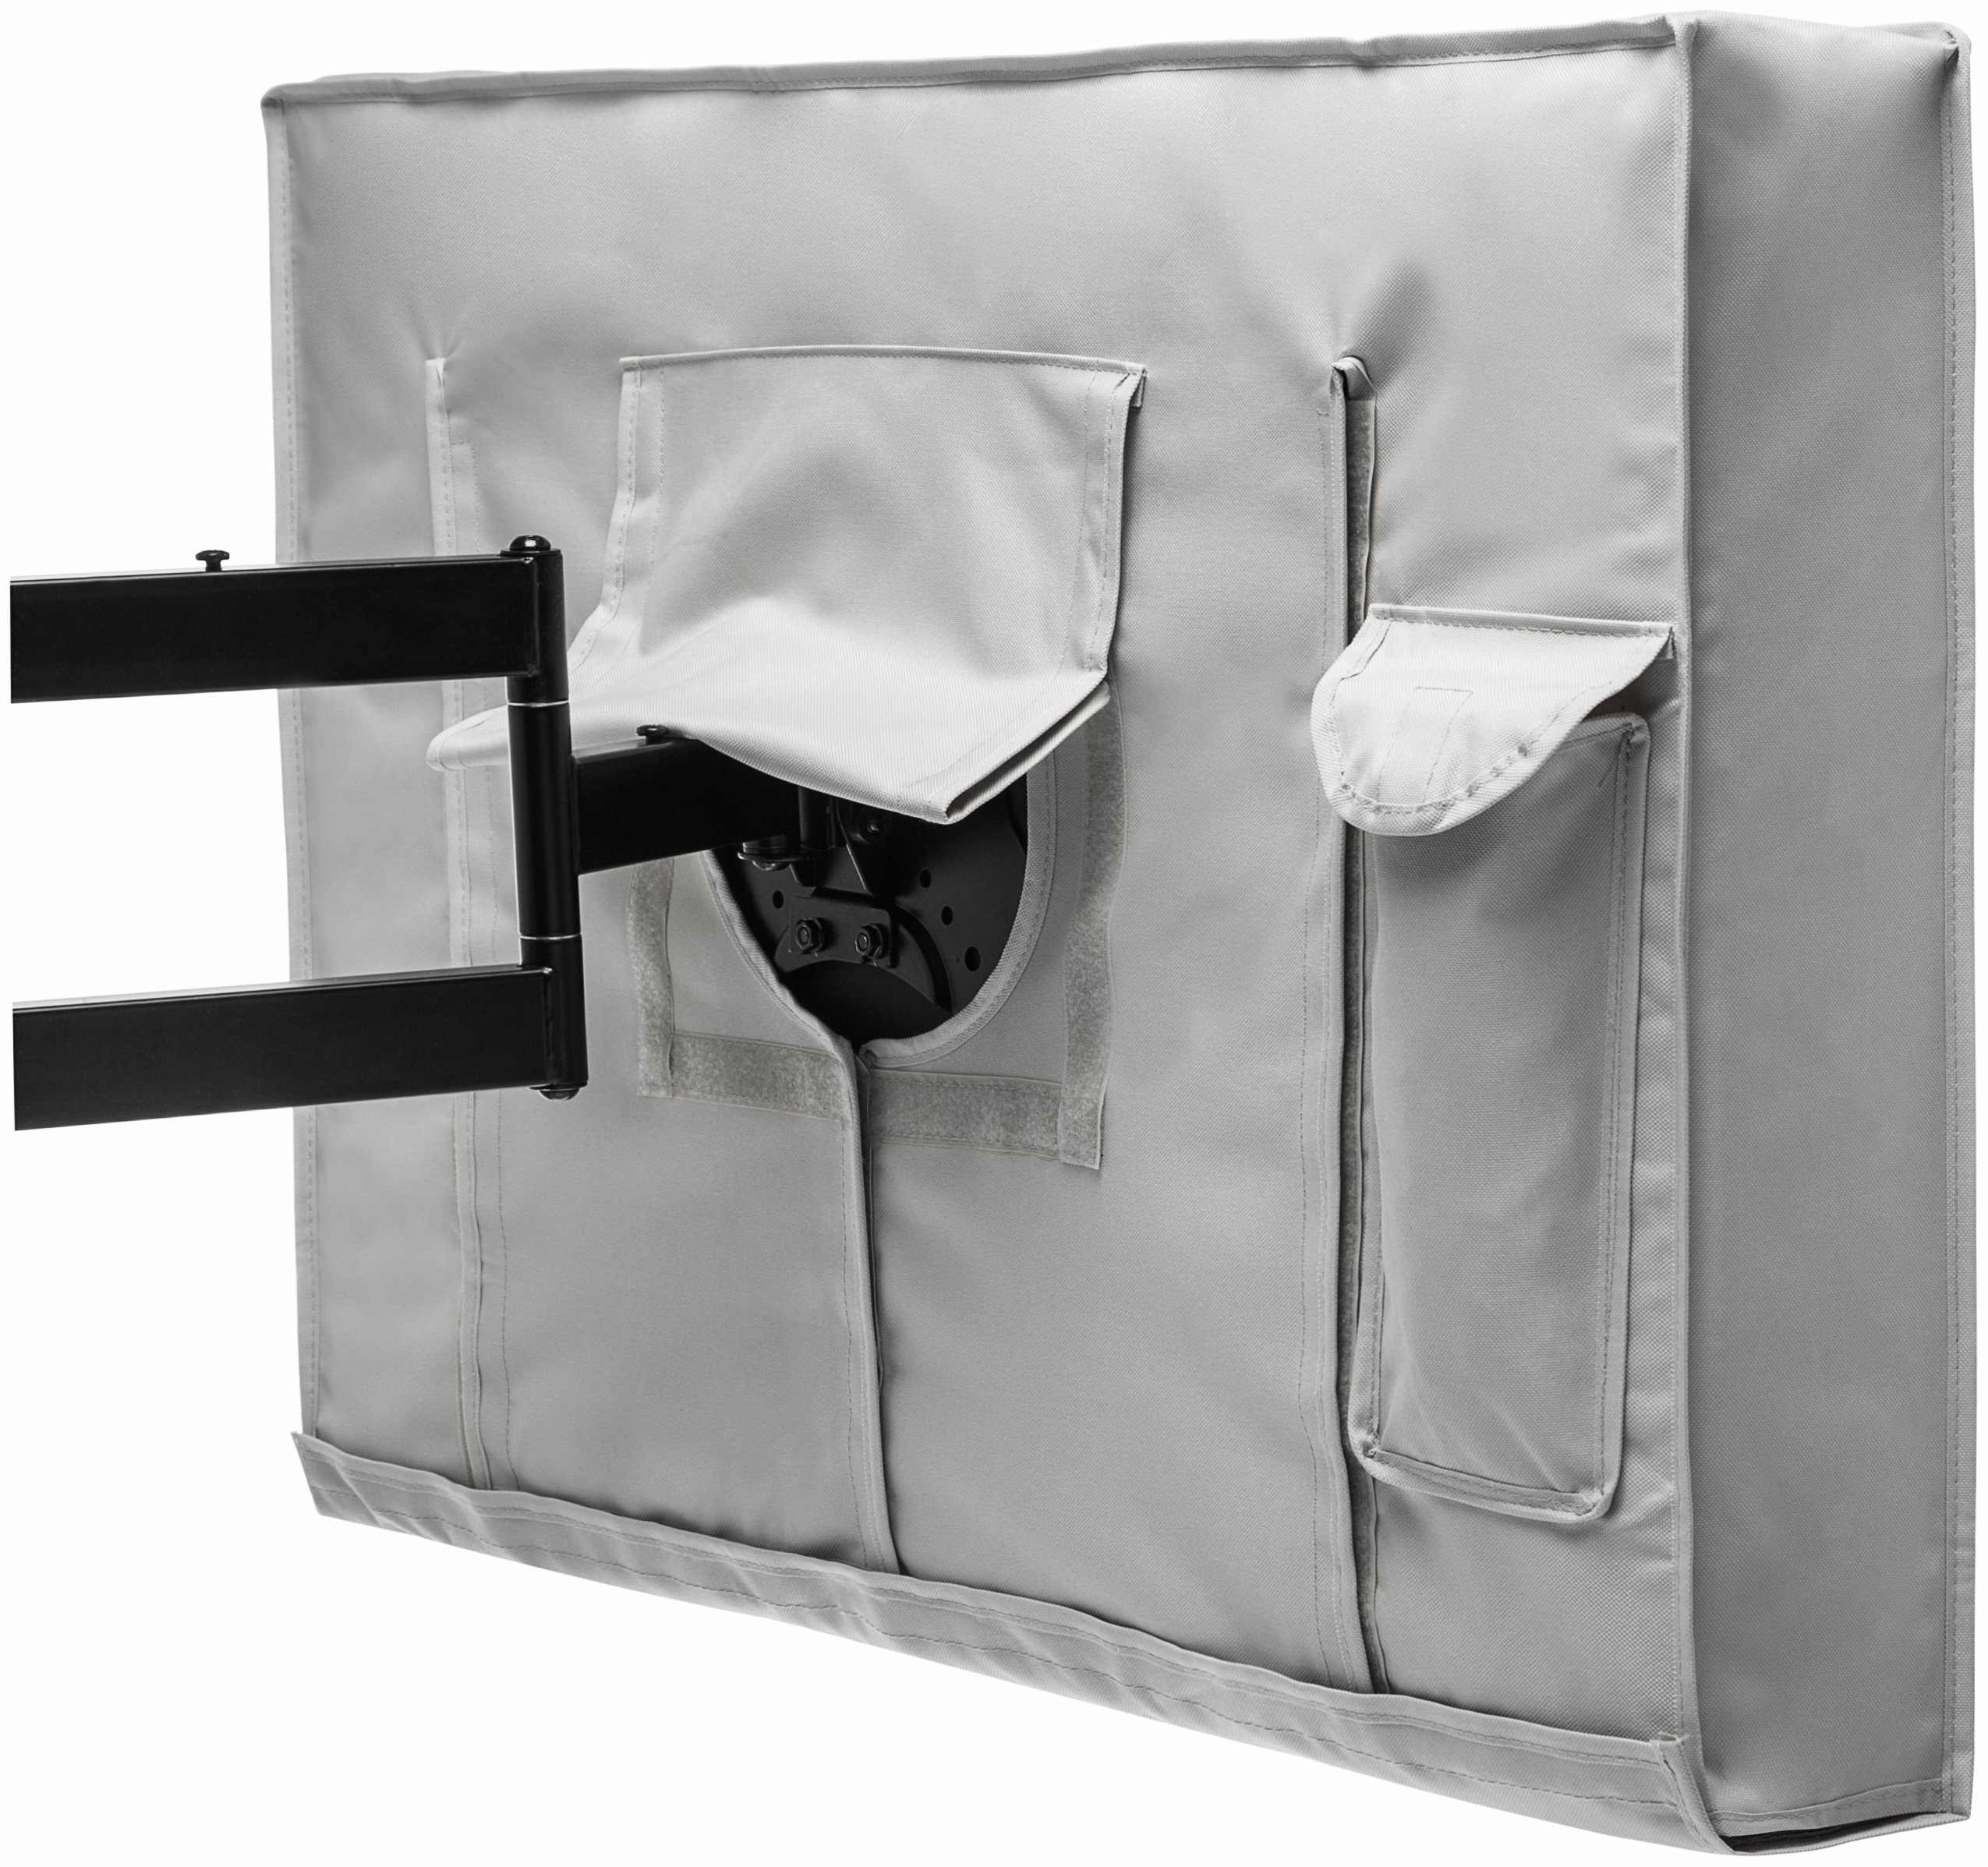 Outdoor TV Cover 52'' - 55'' Gray Weatherproof Universal Protector for LCD, LED, Plasma Television Screens. Built in Bottom Cover and Remote Storage. Compatible with Standard Mounts and Stands. by Stronghold Accessories